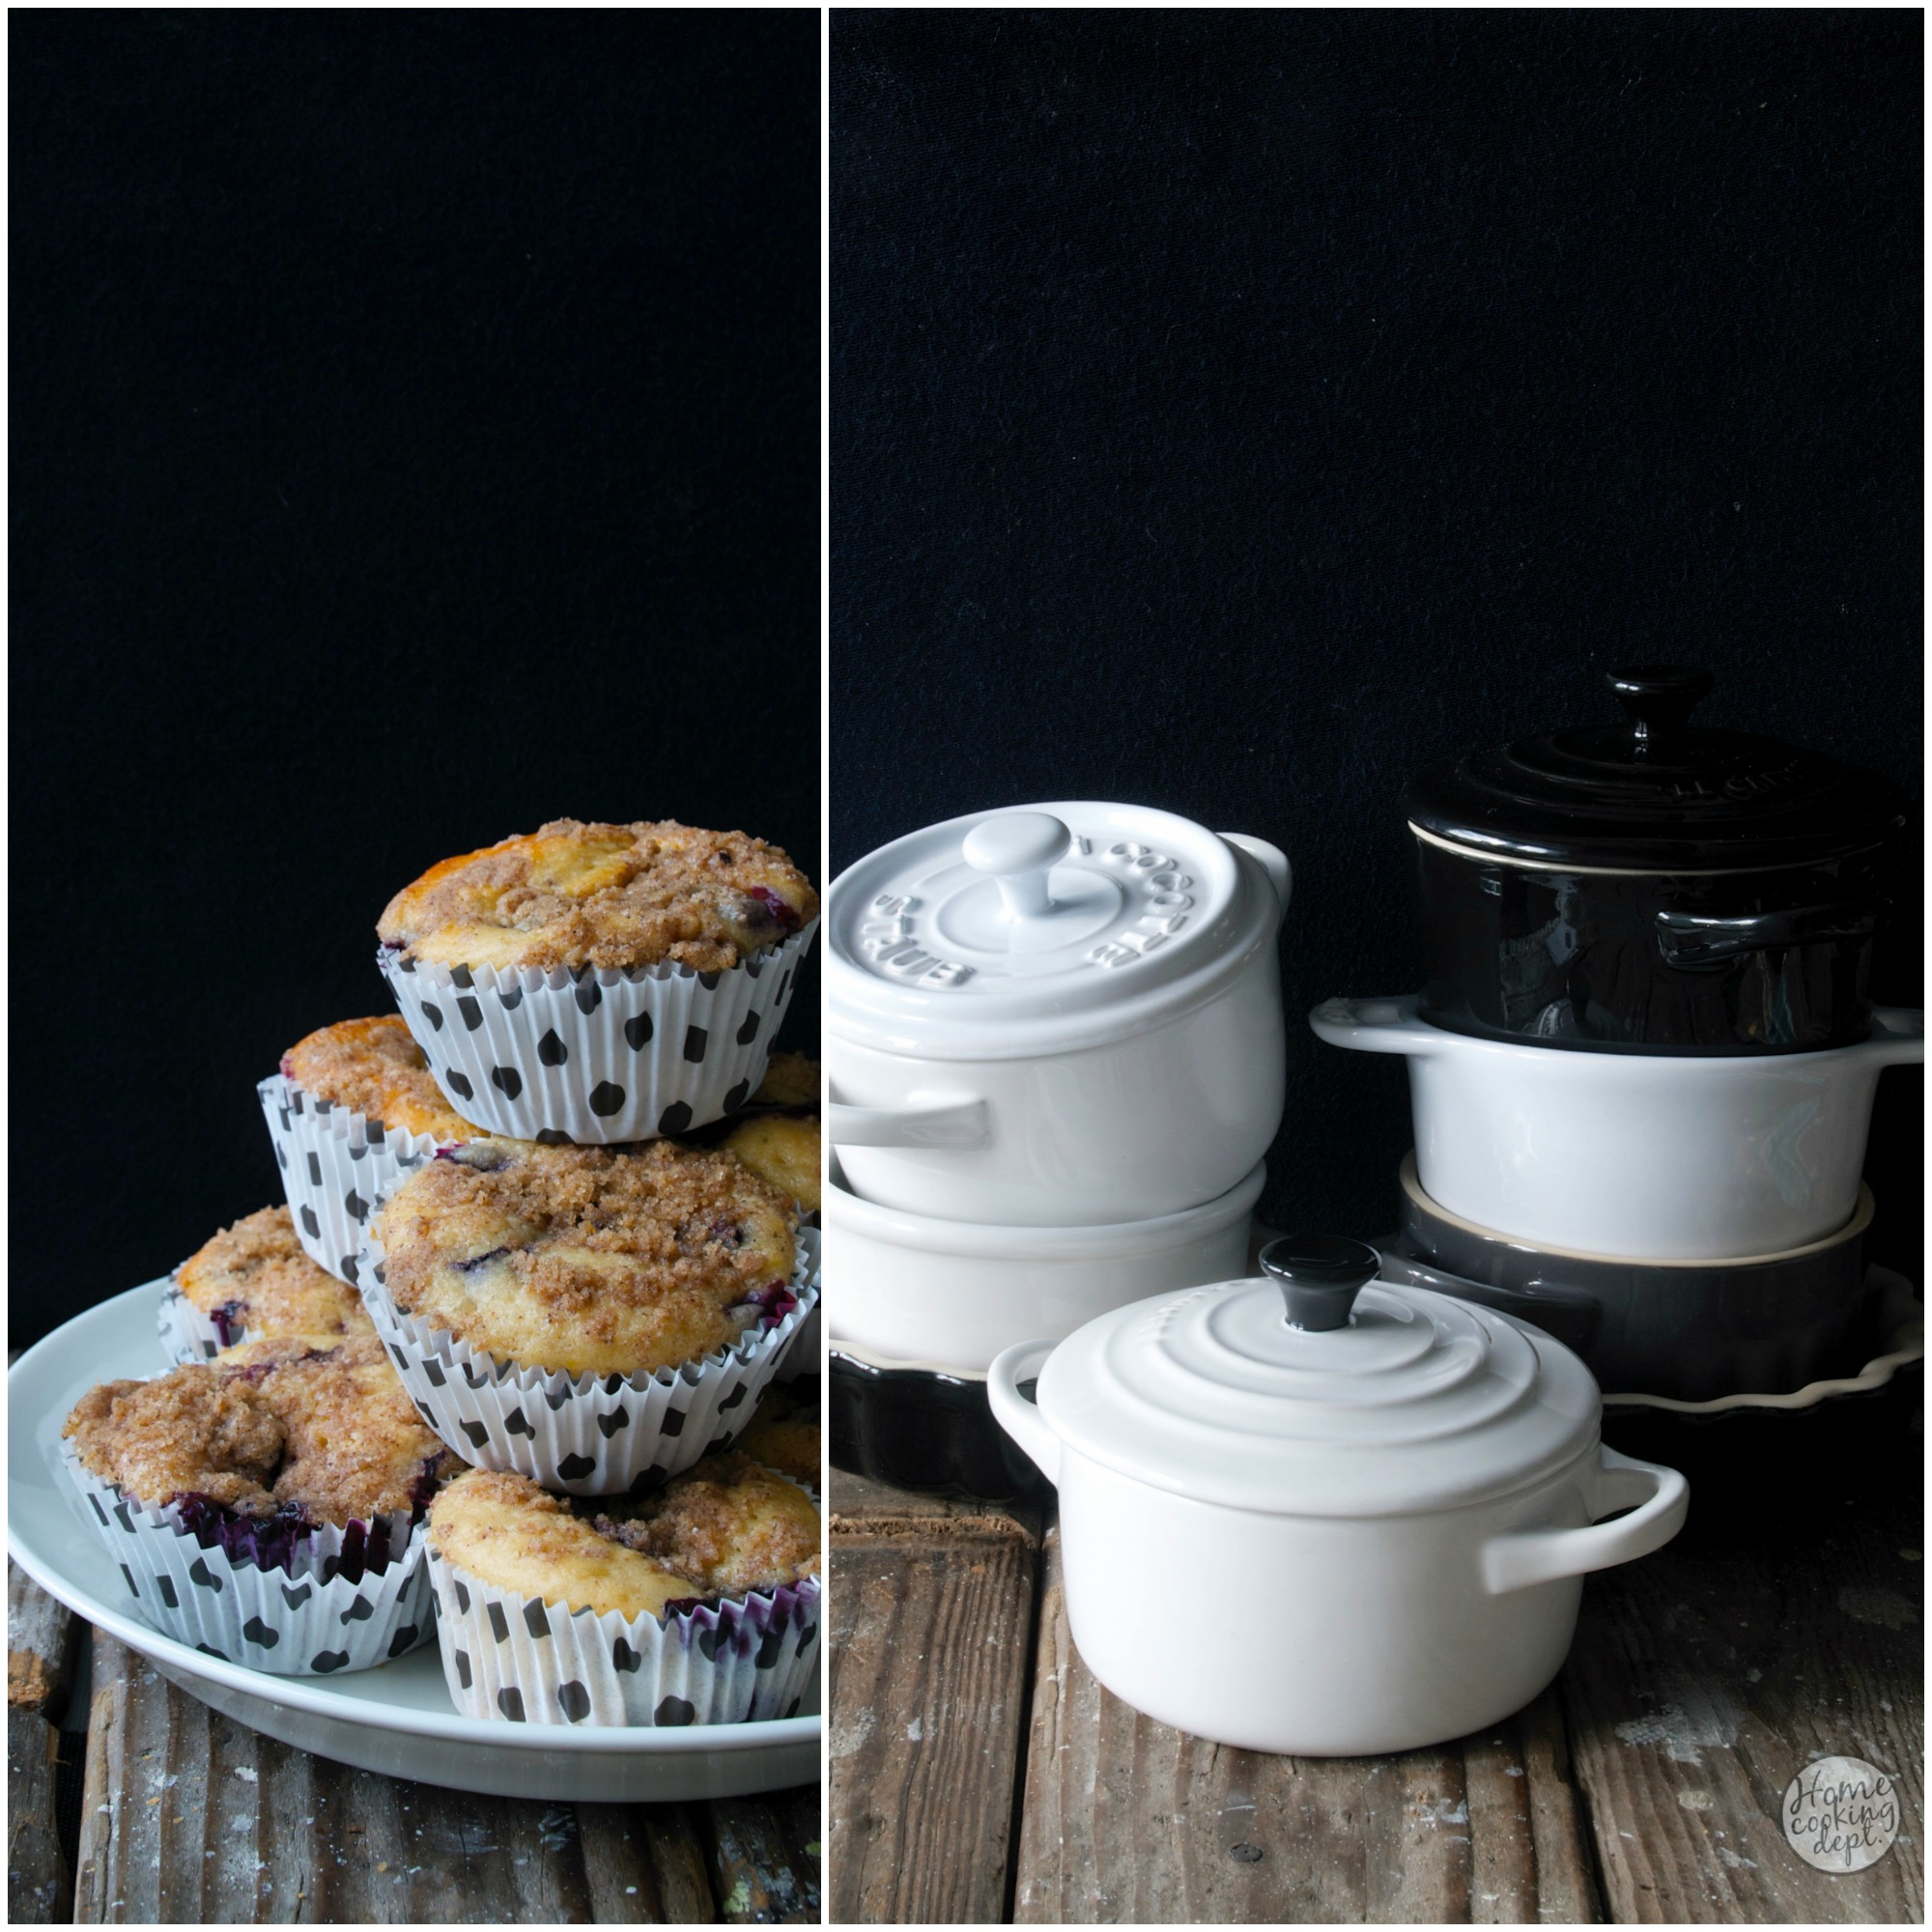 Paasontbijt styling / Homecooking dept